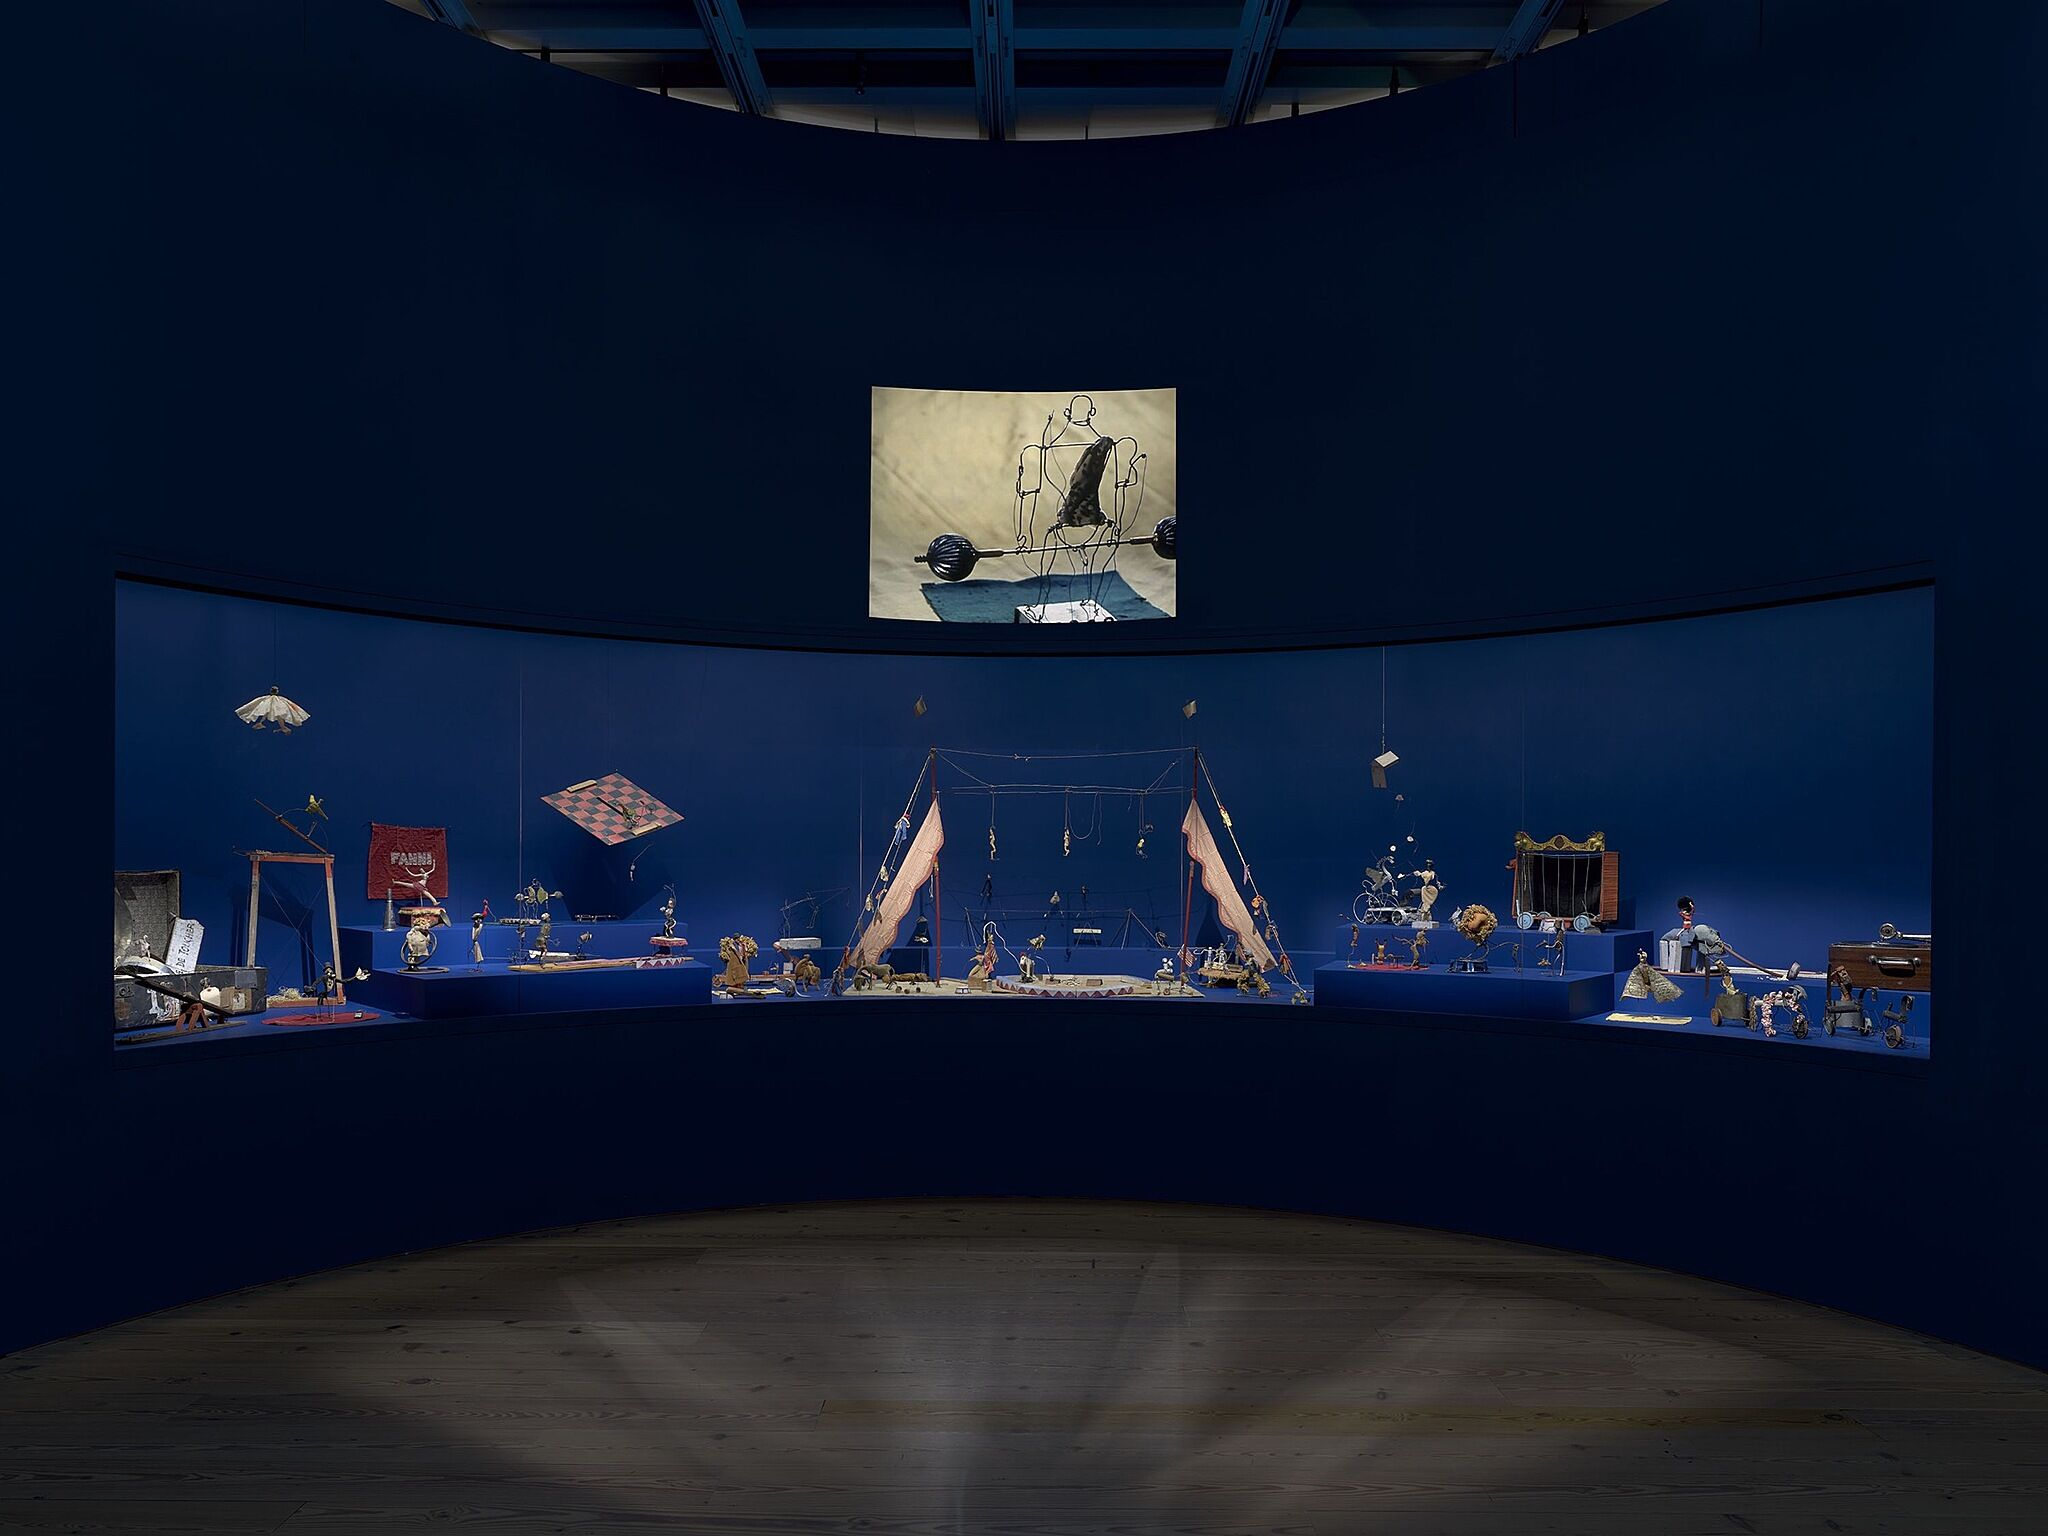 An image of the Whitney galleries with a film projected above a glass enclosure of sculptures